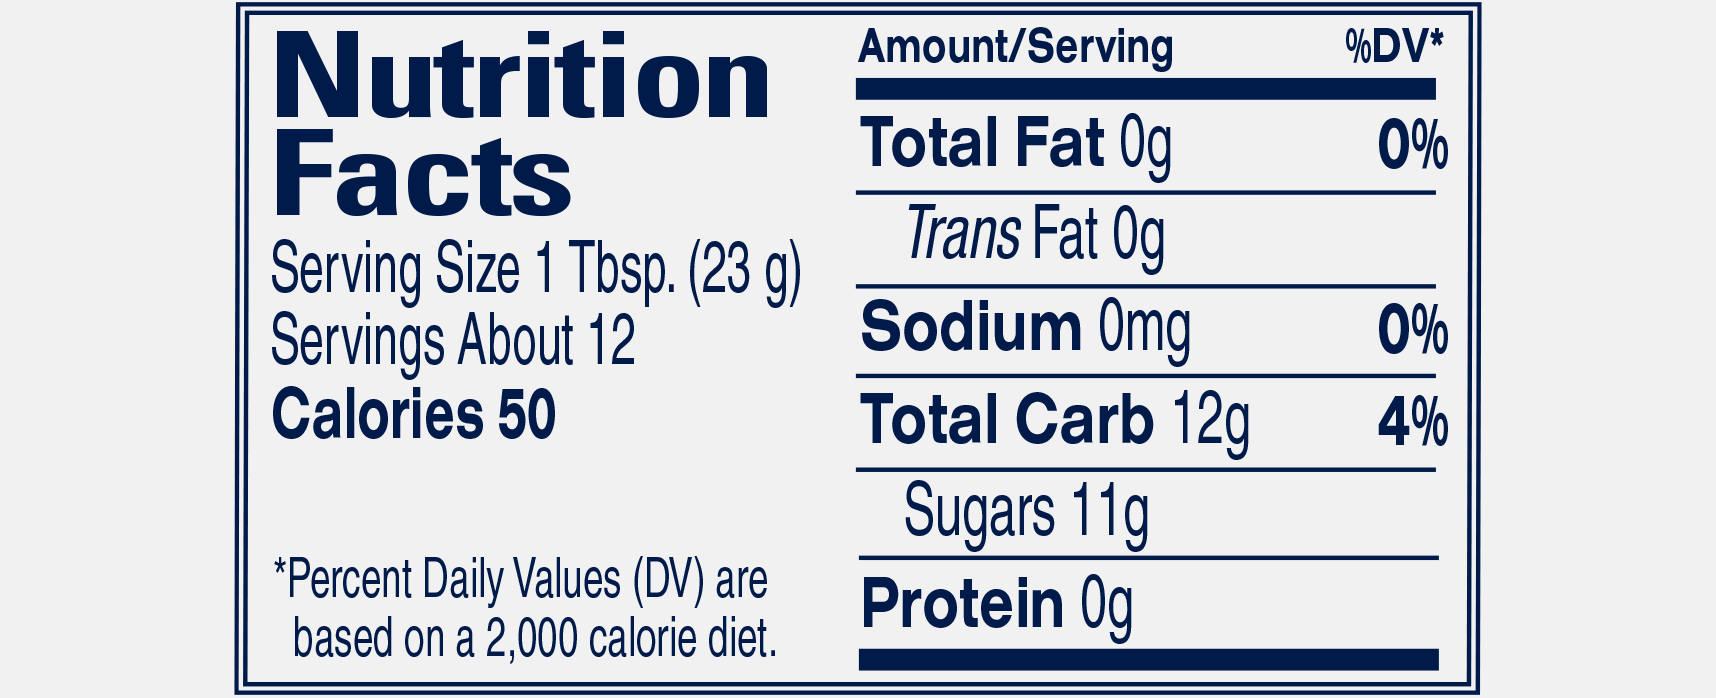 StDalfour_NutritionFacts_Strawberry.png